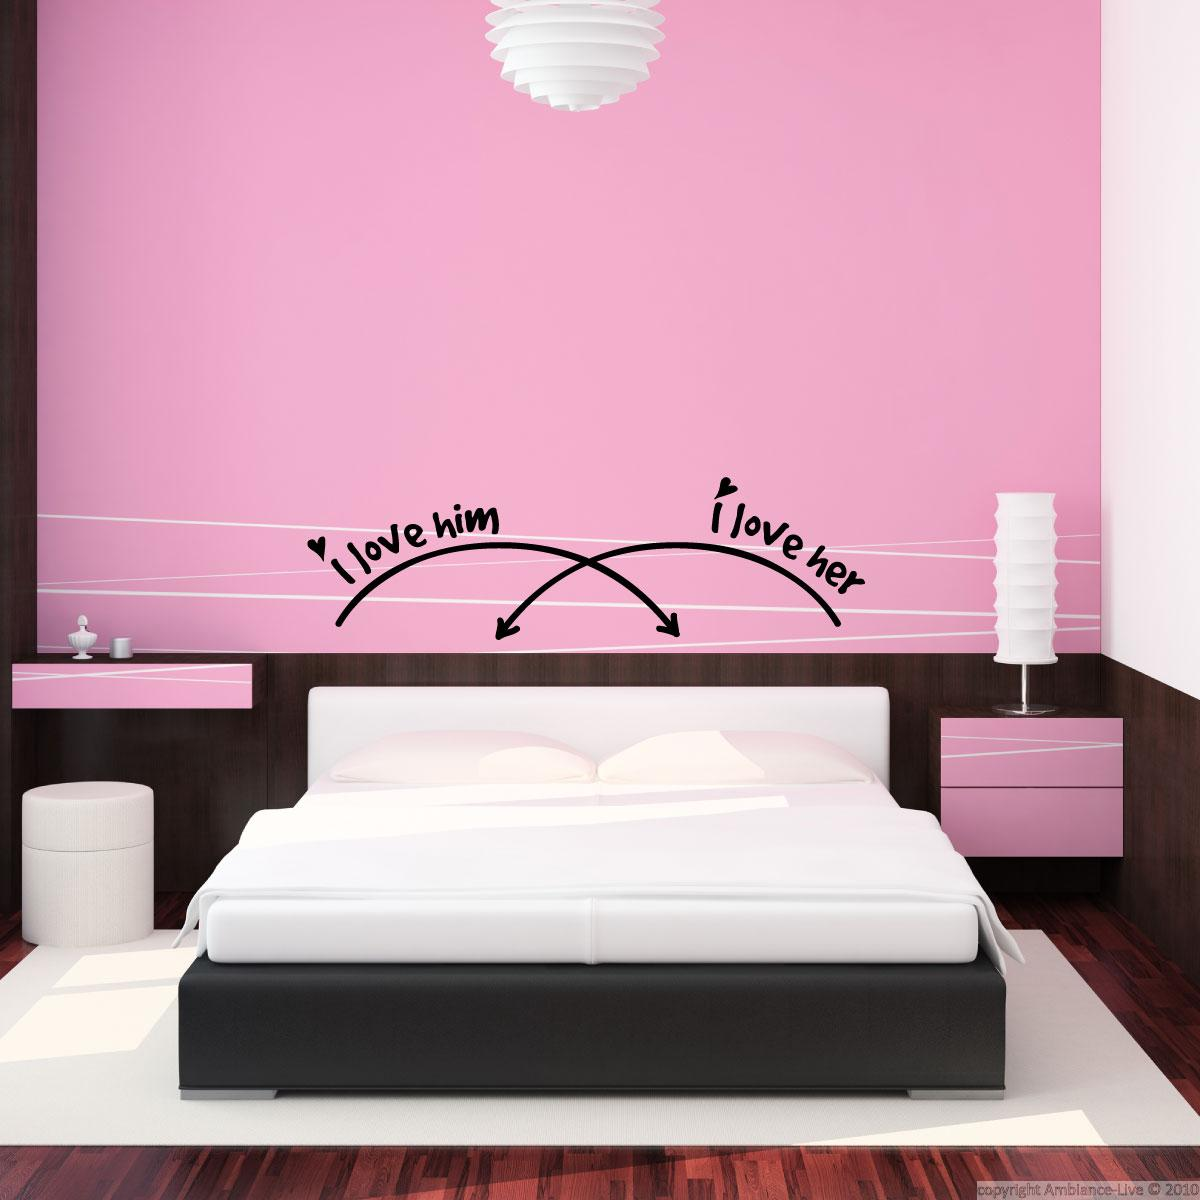 Wall decal i love him i love her decoration wall decals for Ambiance decoration